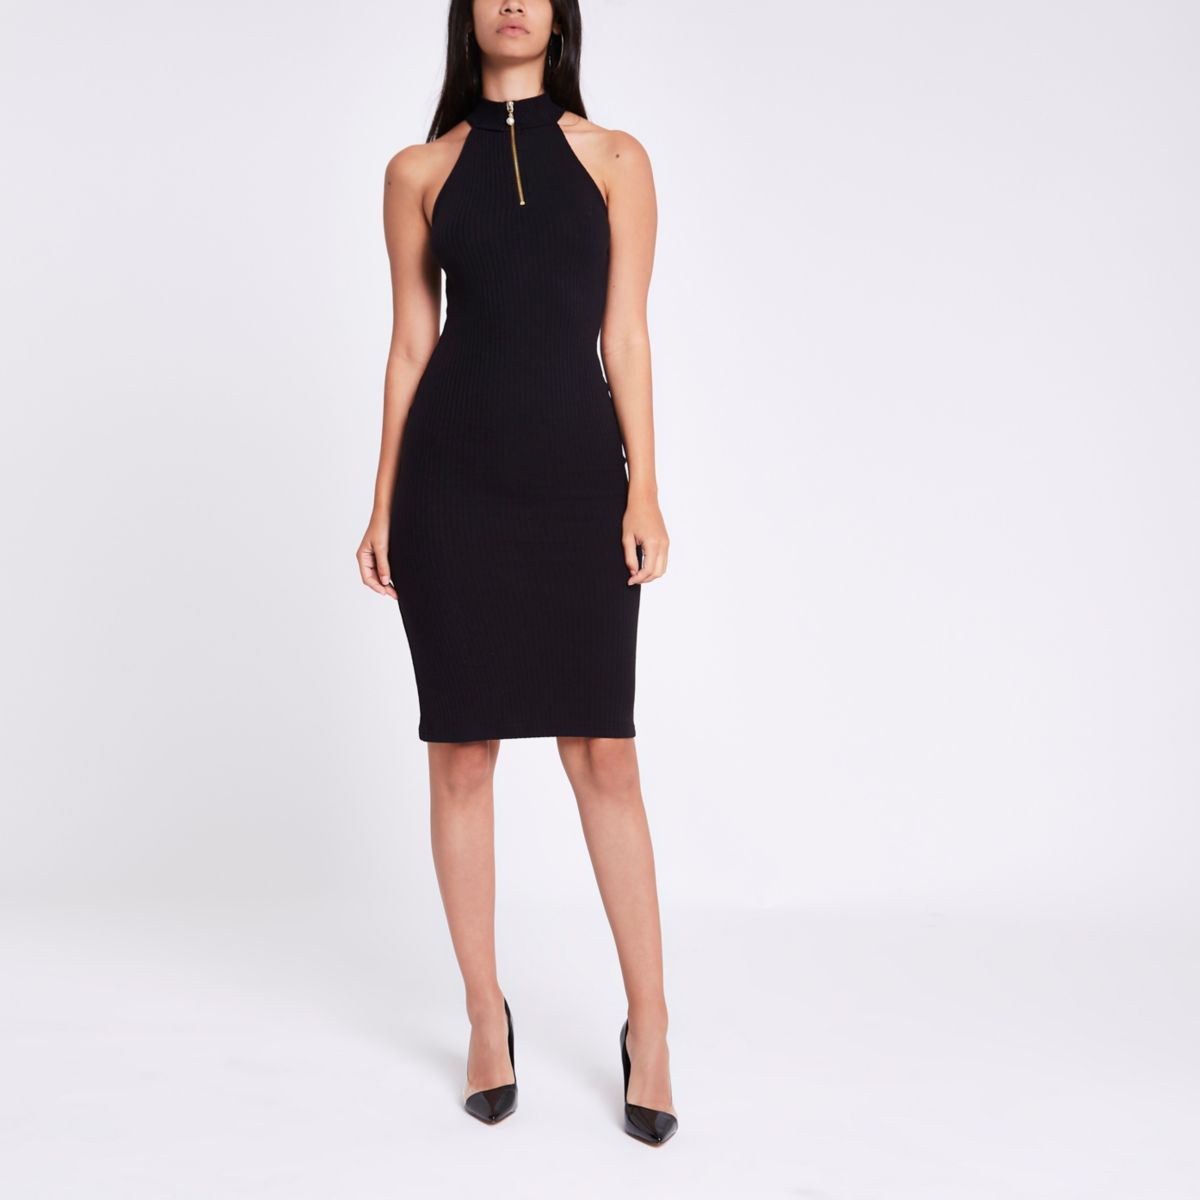 Black halter neck zip mini bodycon dress